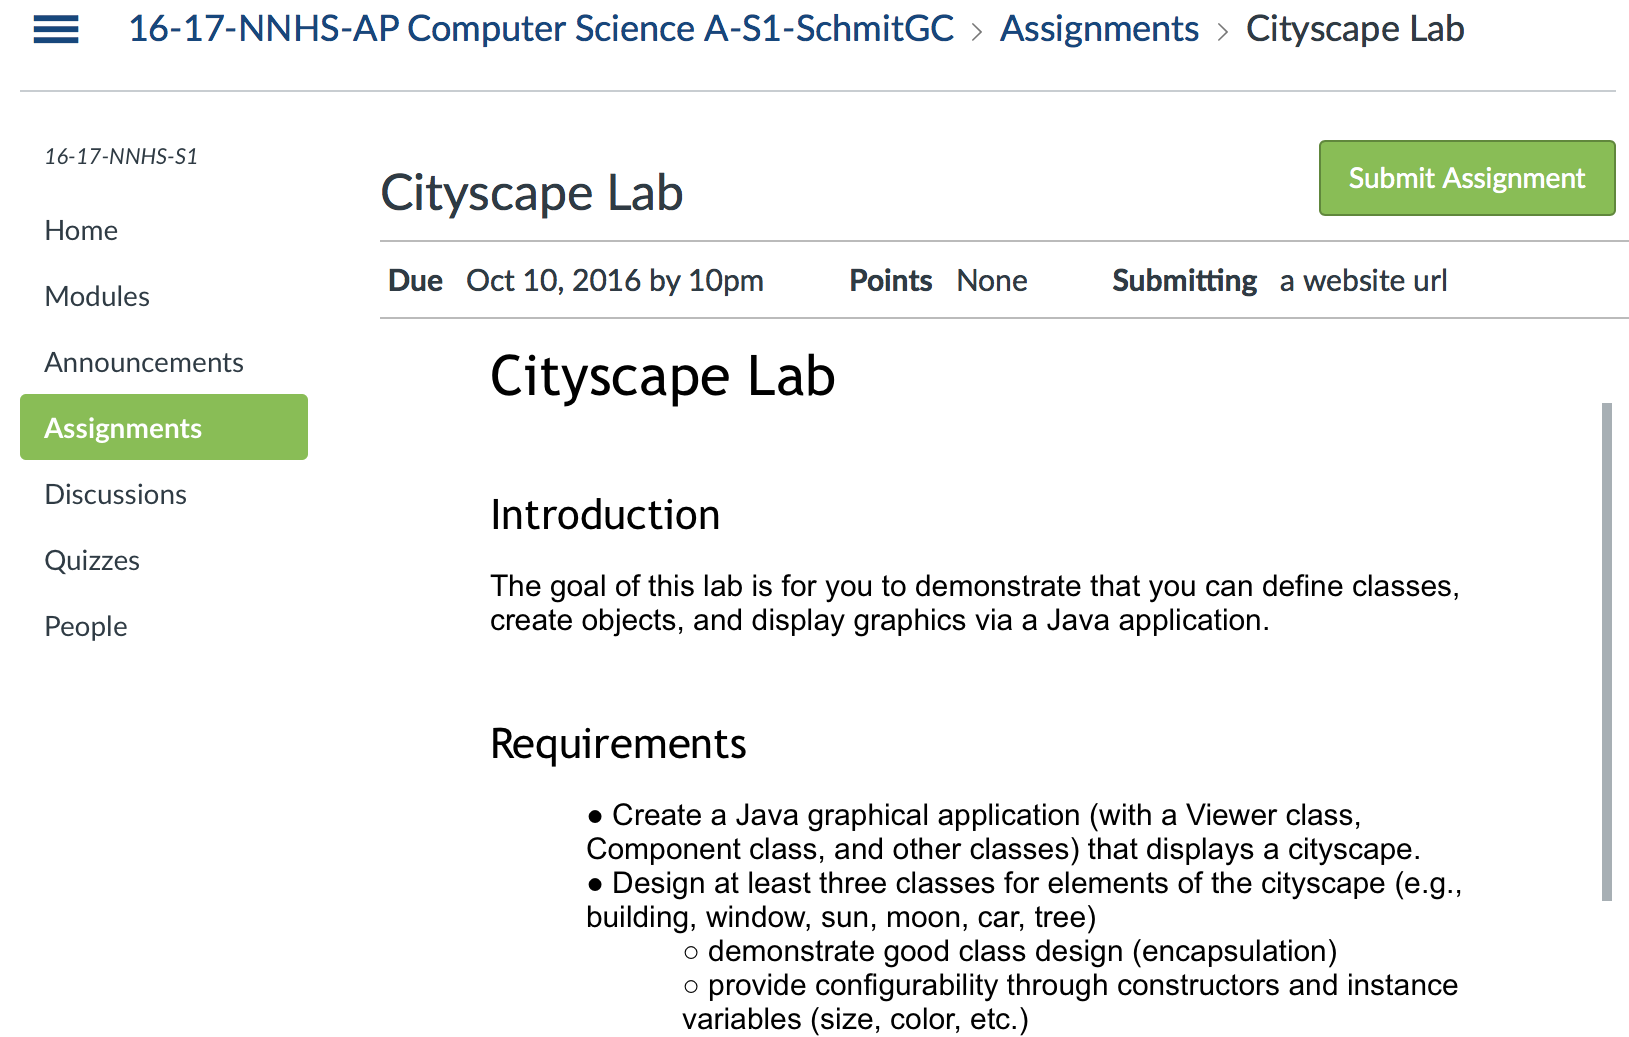 Cityscape Lab from Schmit's course